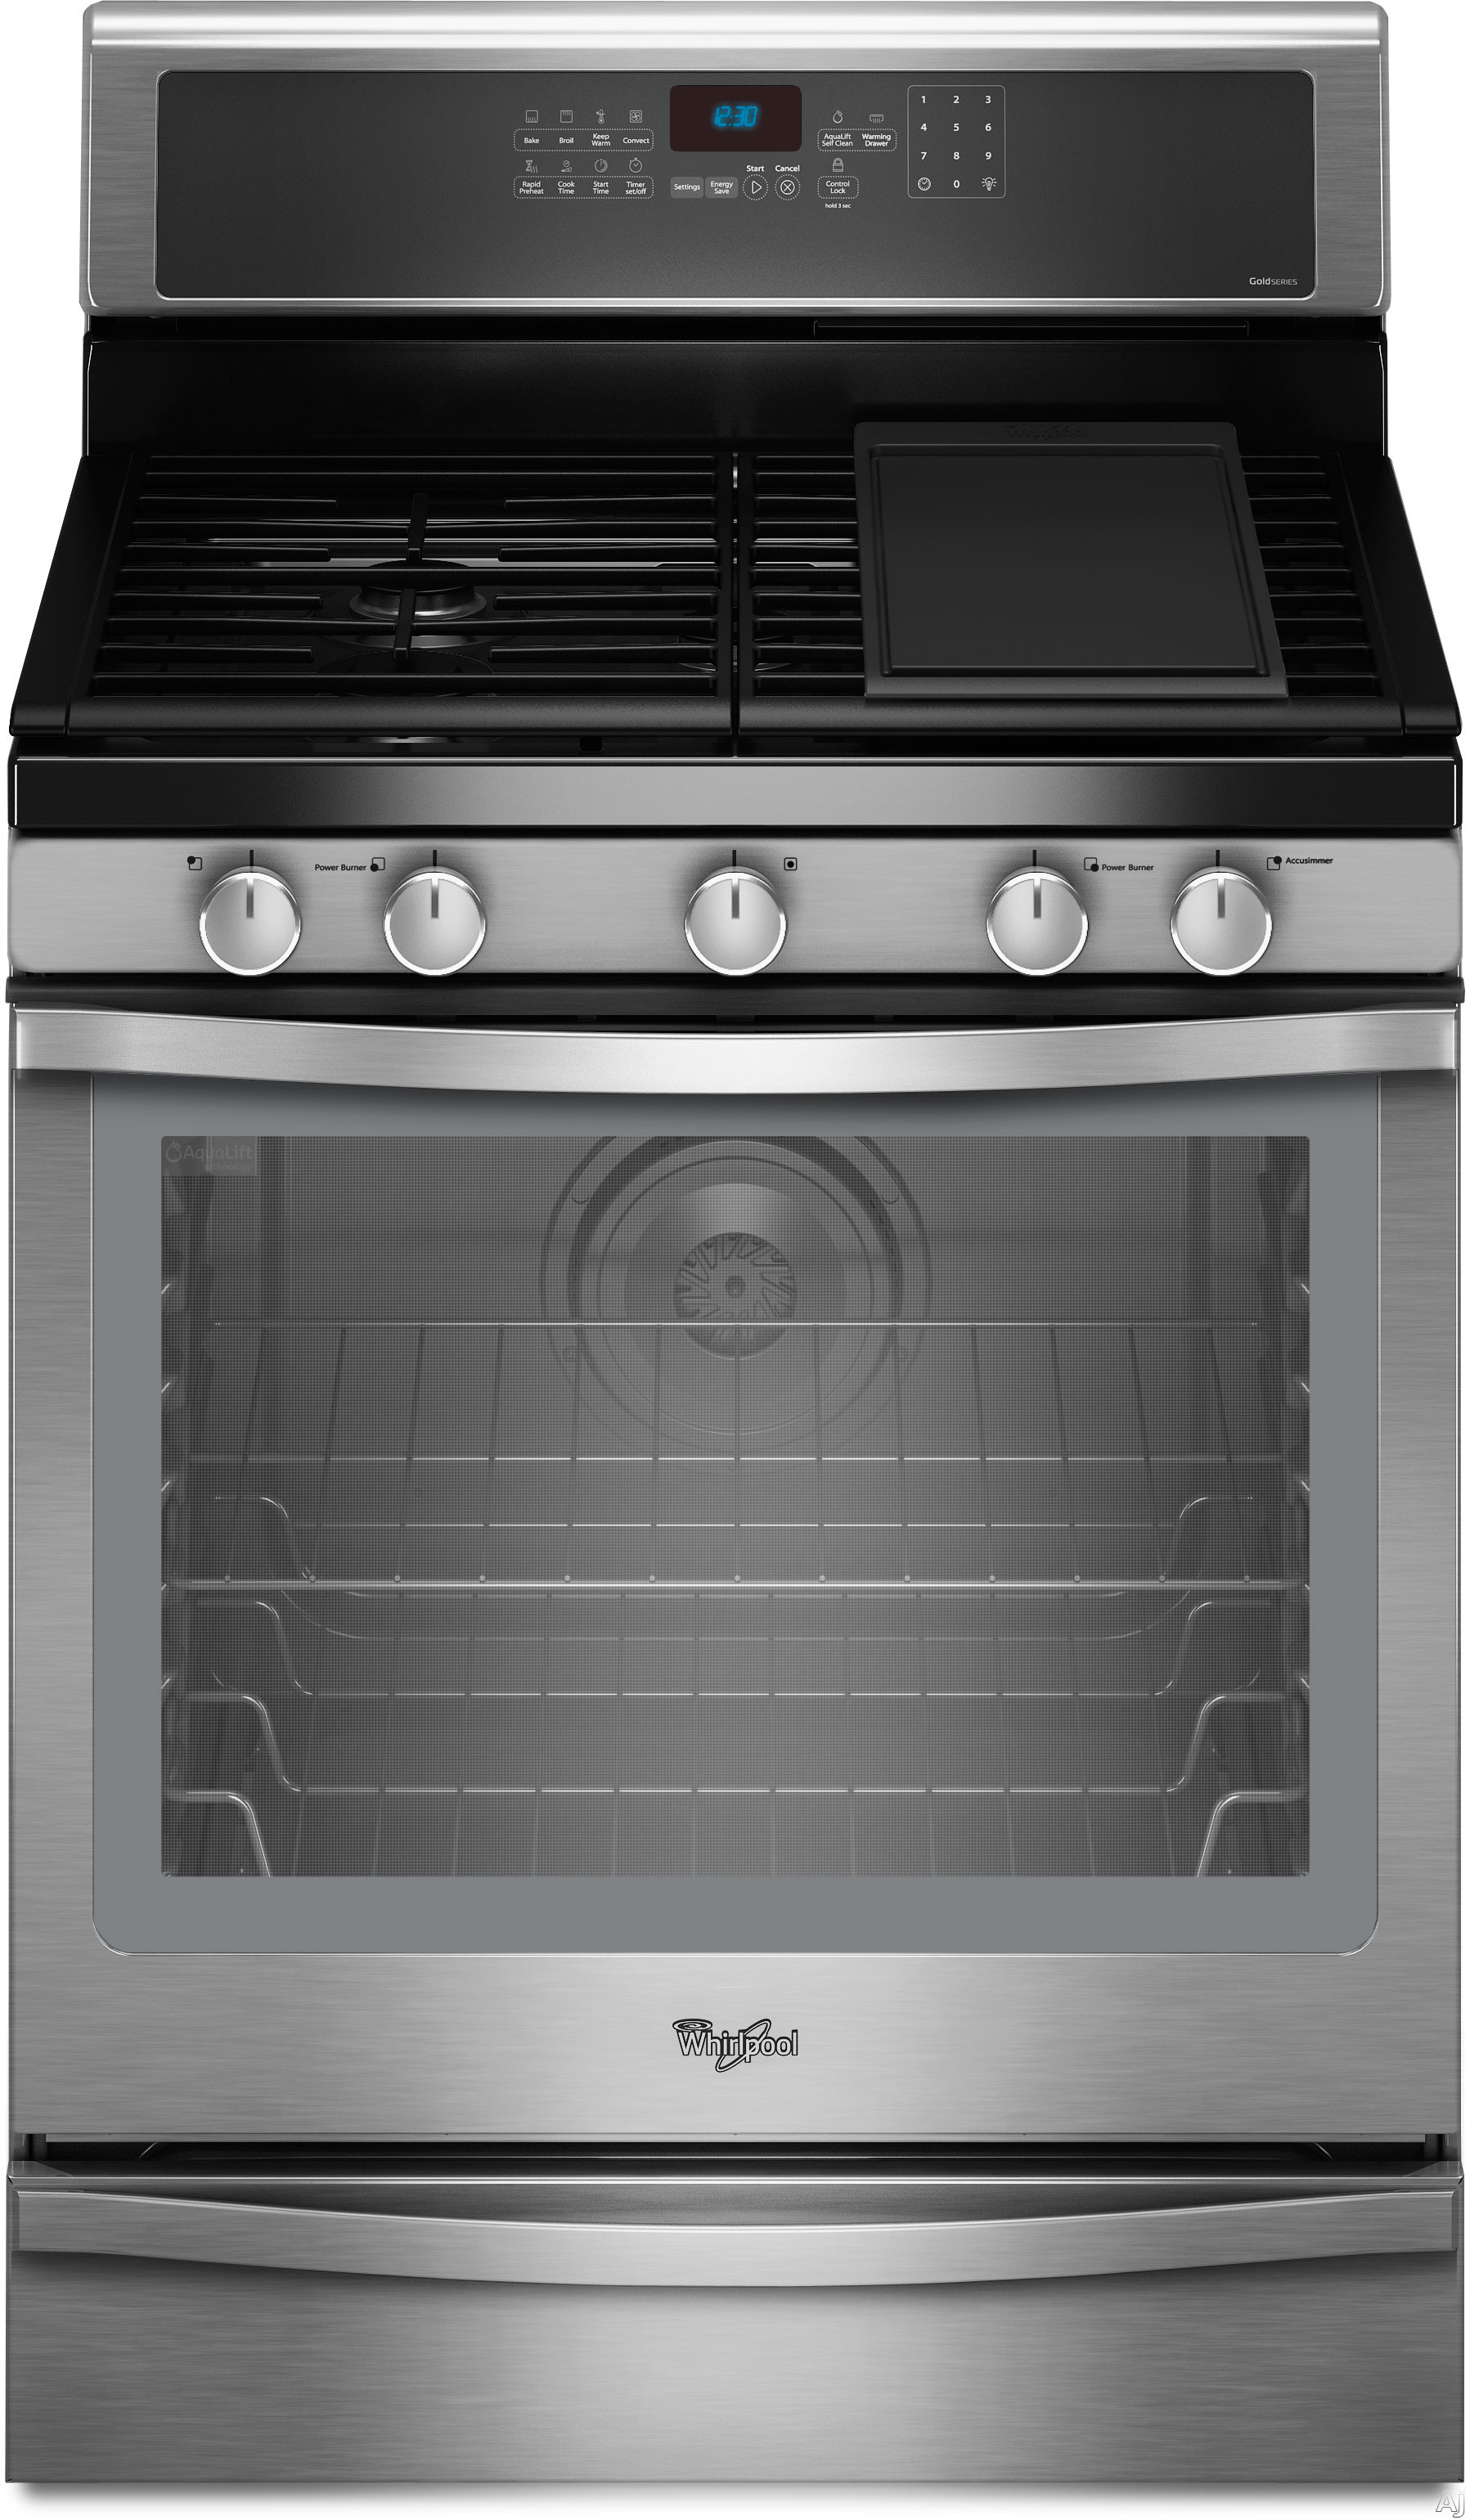 """Whirlpool WFG710H0A 30"""" Freestanding Gas Range with 4 Sealed Burners, 5.8 cu. ft. TimeSavor, U.S. & Canada WFG710H0A"""